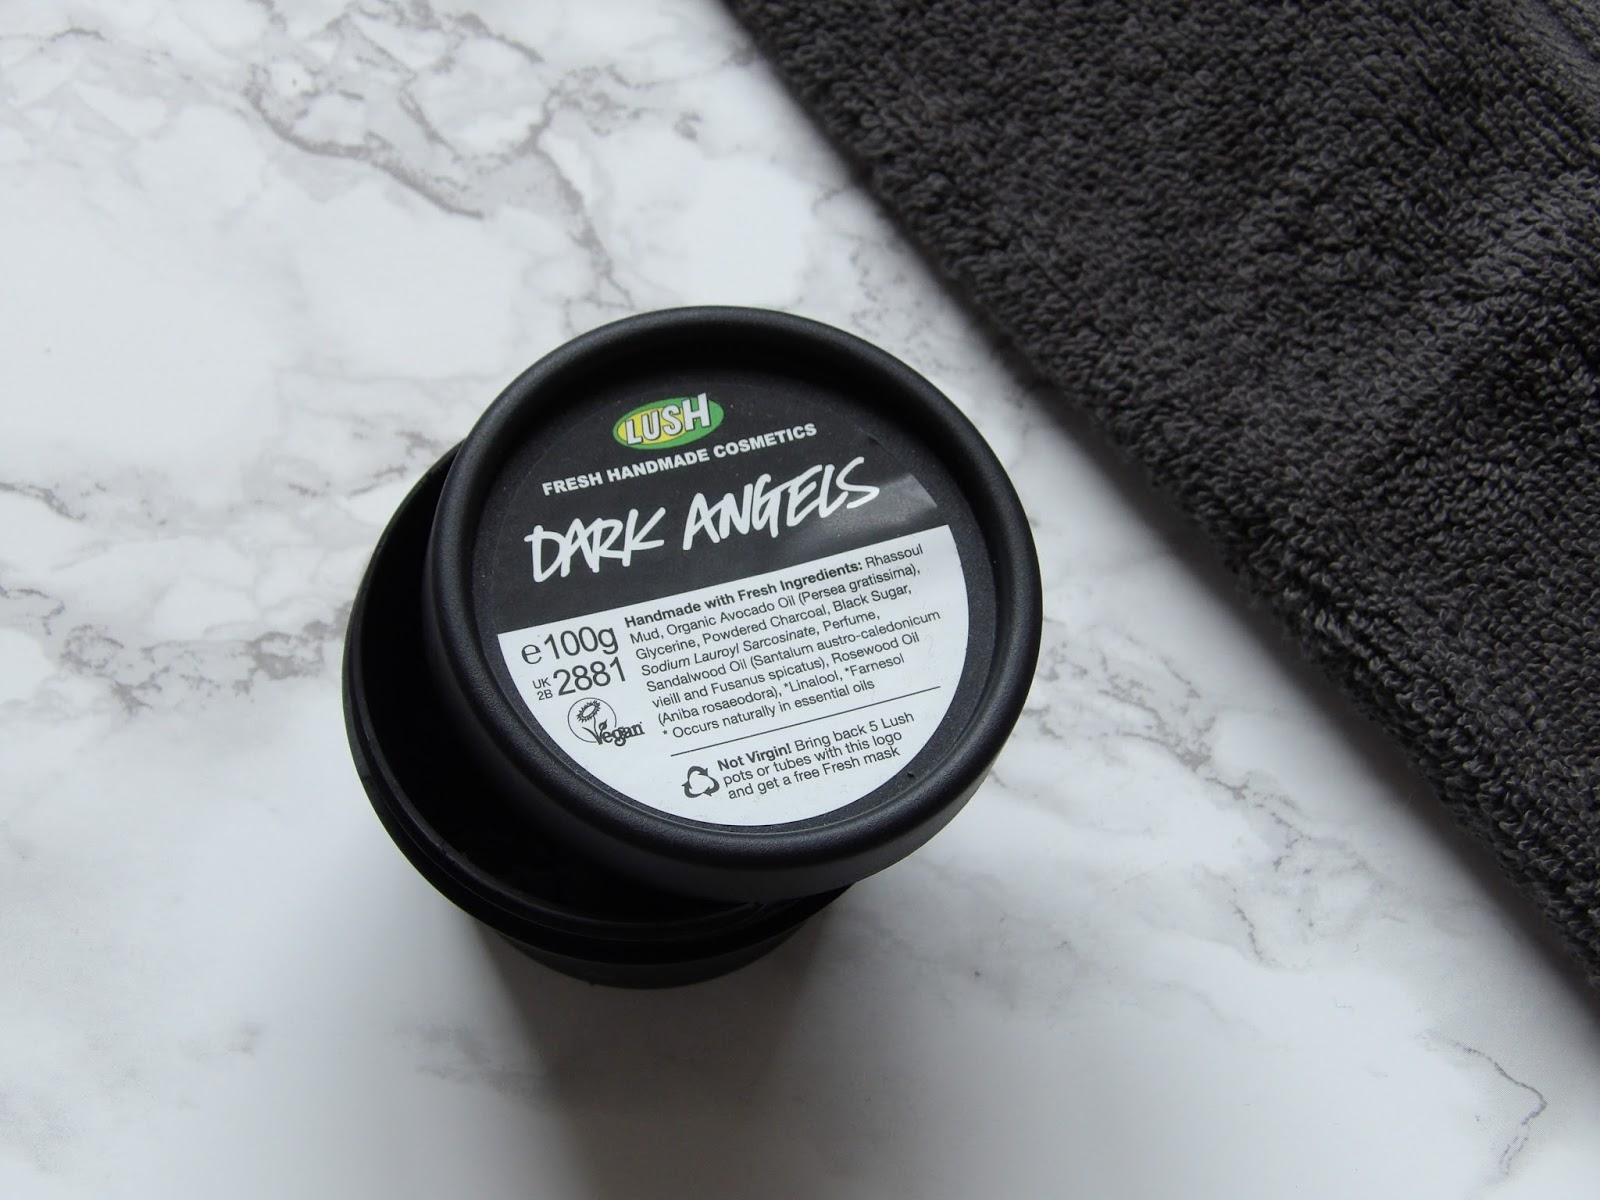 LUSH DARK ANGELS FACIAL CLEANSER | REVIEW